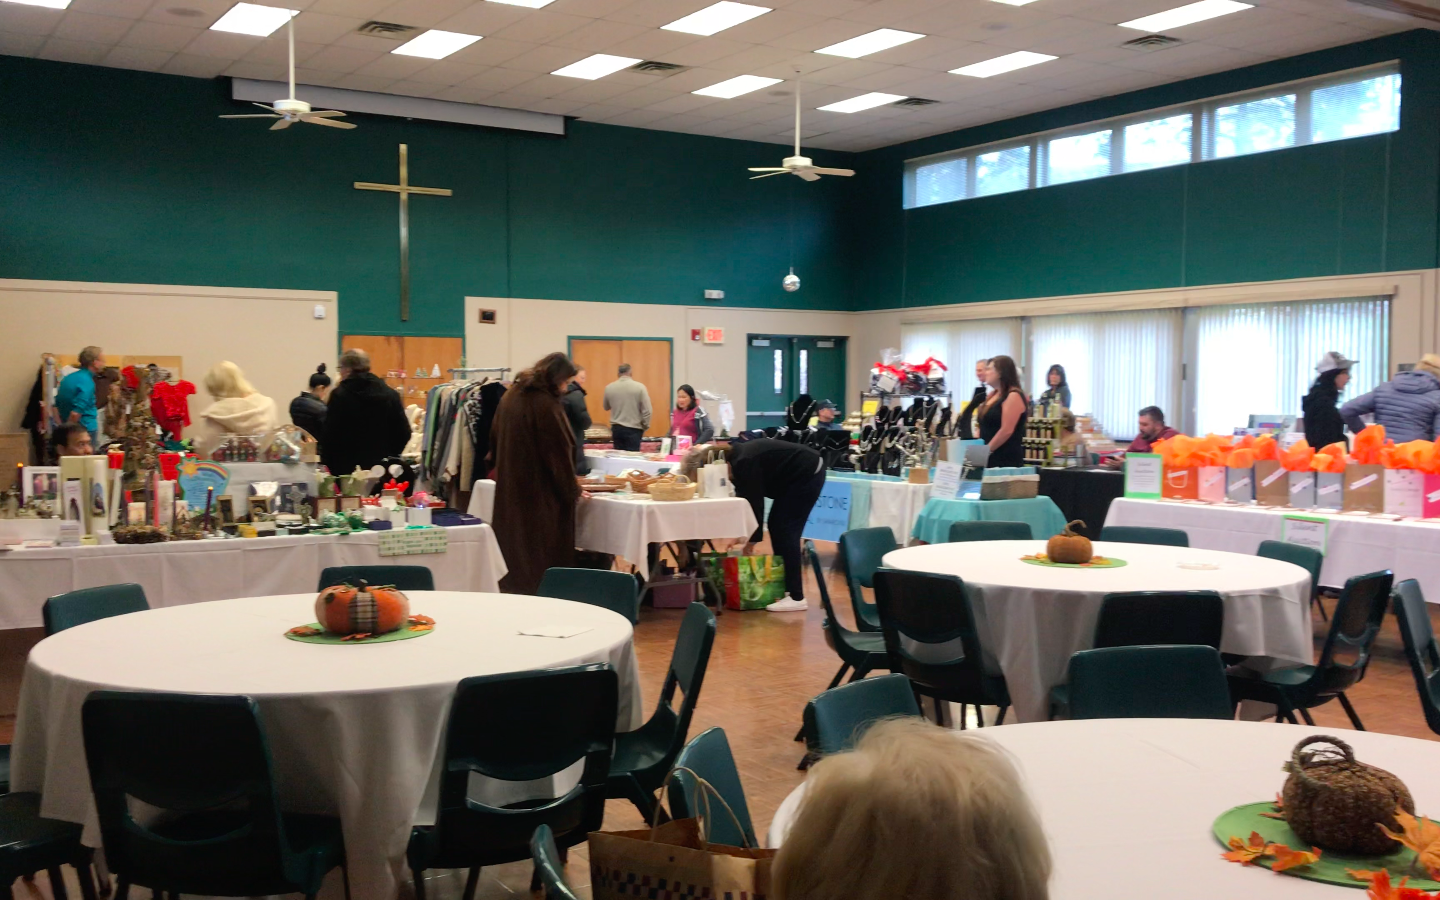 The Saint Luke's Church opened its doors for the Westport community to shop for a unique selection of vintage accessories, treats and holiday gifts.